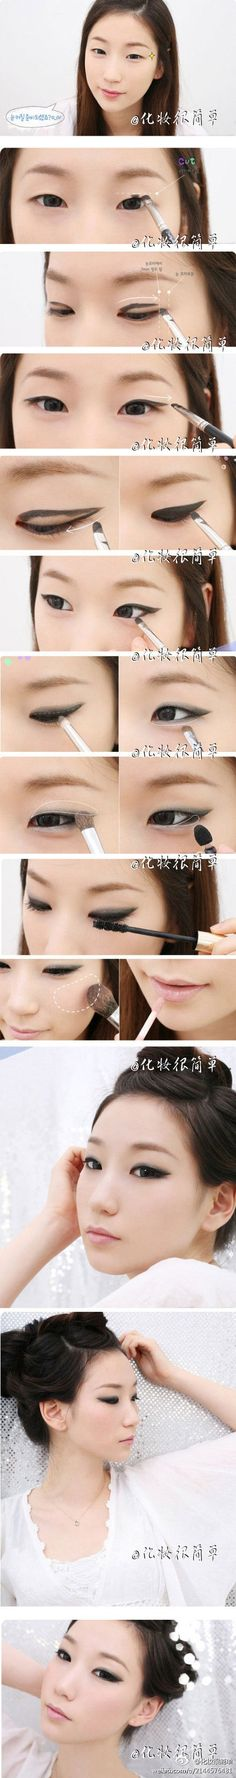 a little modification for eyelid shape and this is a simple smoky look that anybody could pull off